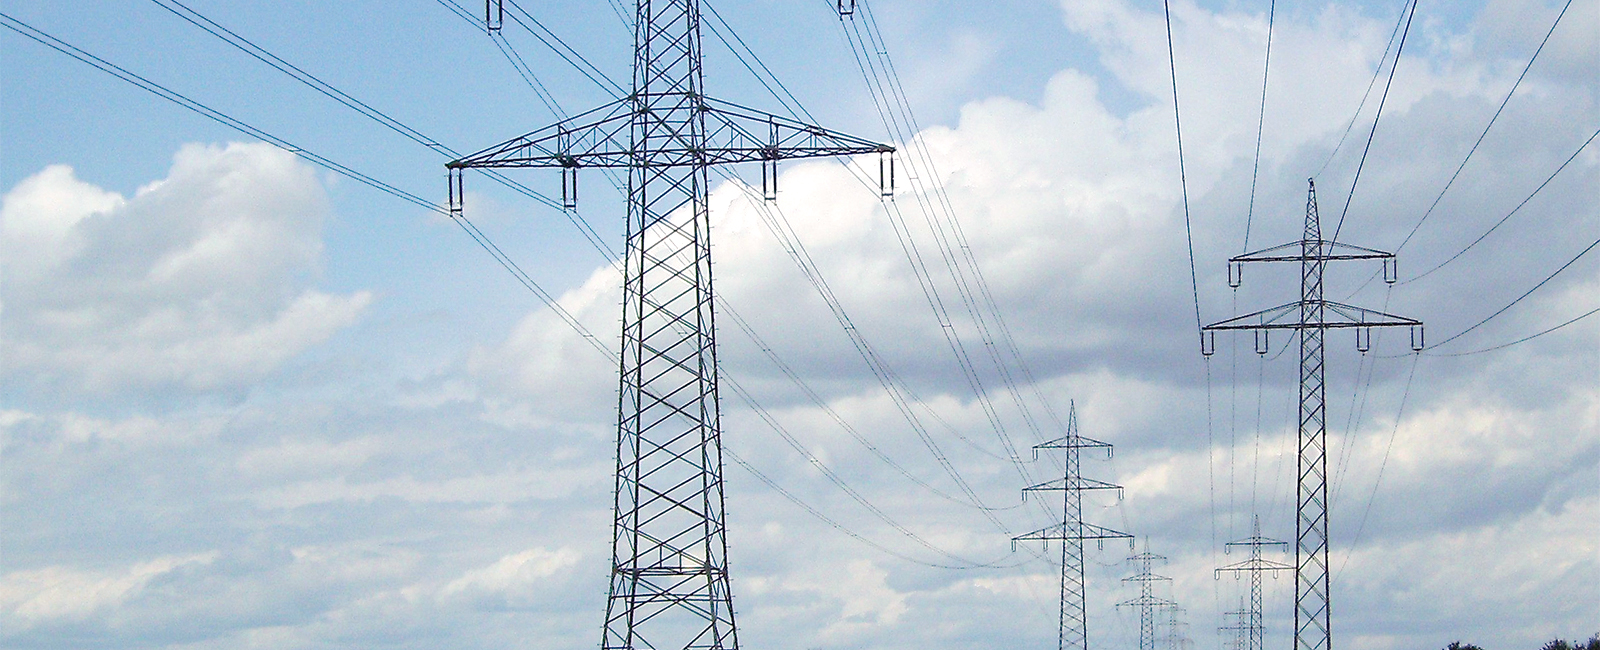 BHEL wins Order for 3×800 MW Coal-Fired Power Plant in Jharkhand, India